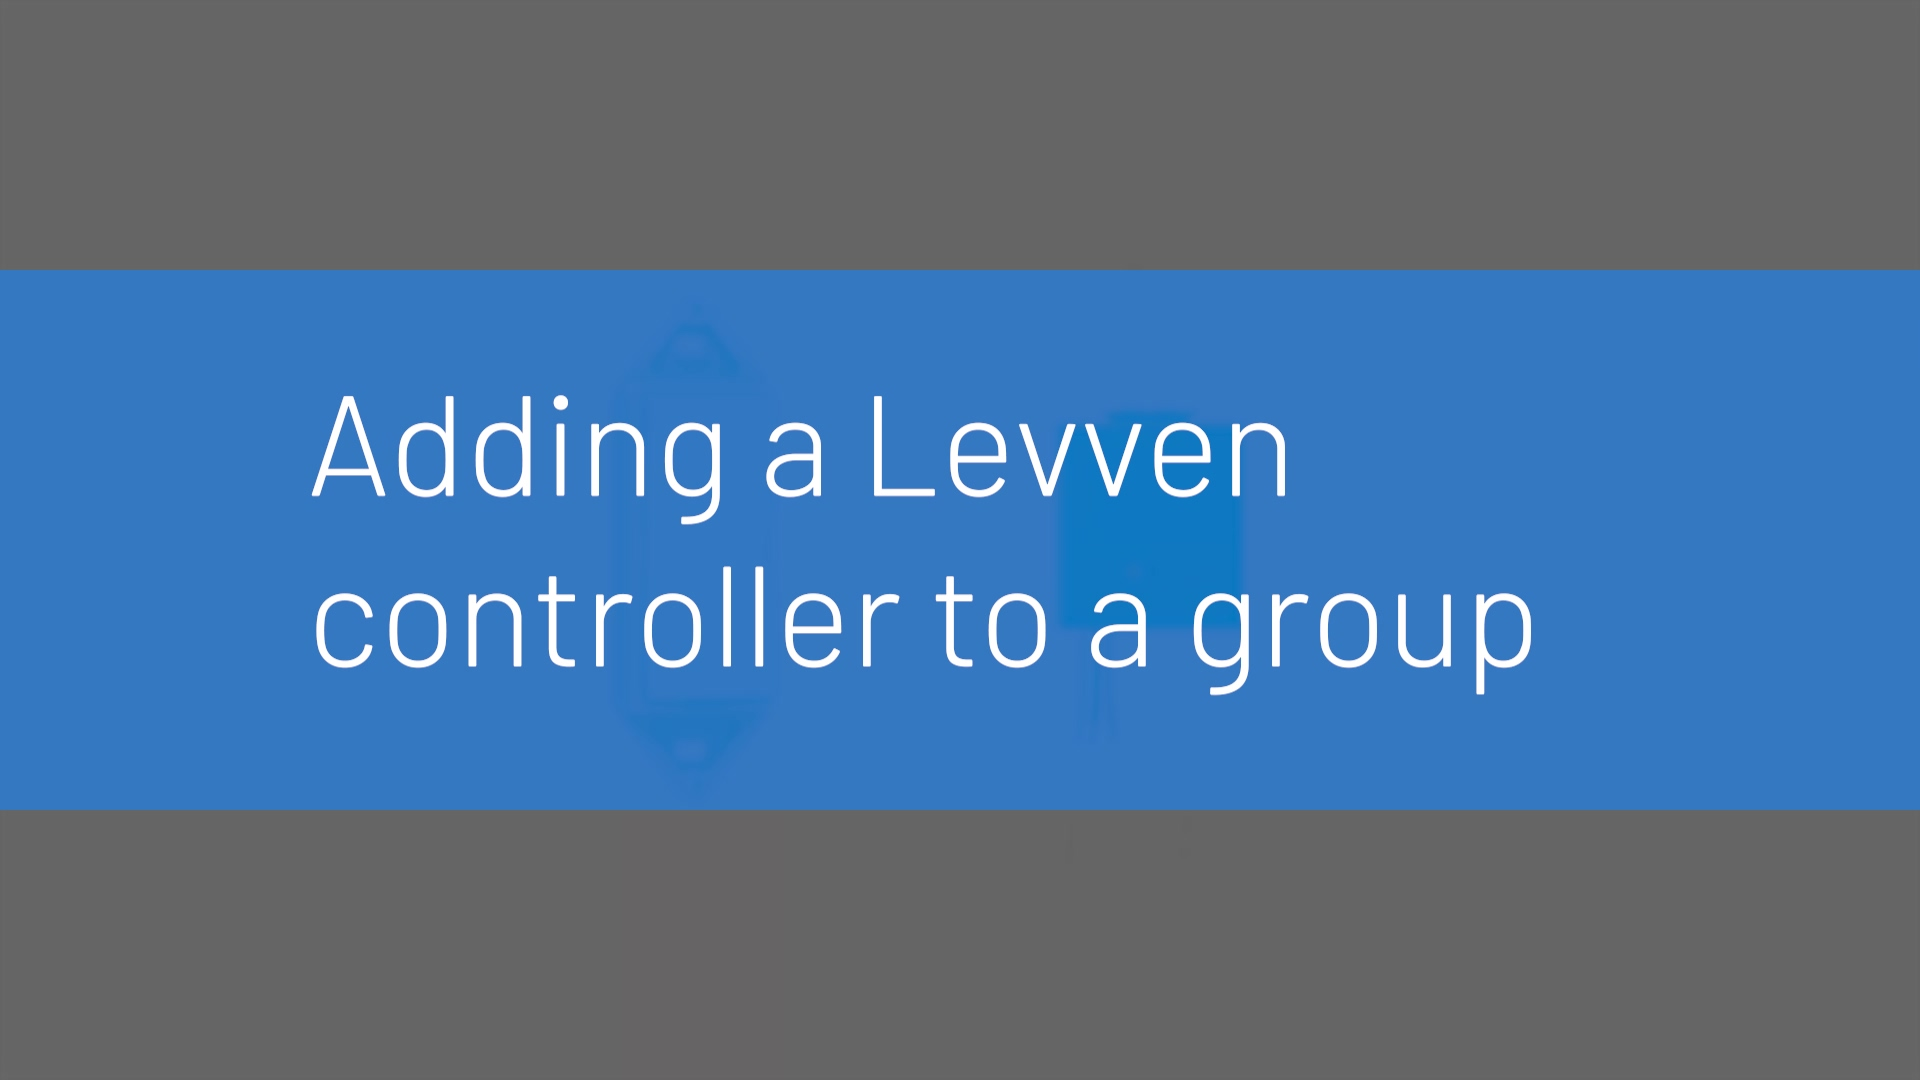 Levven Grouping Controllers